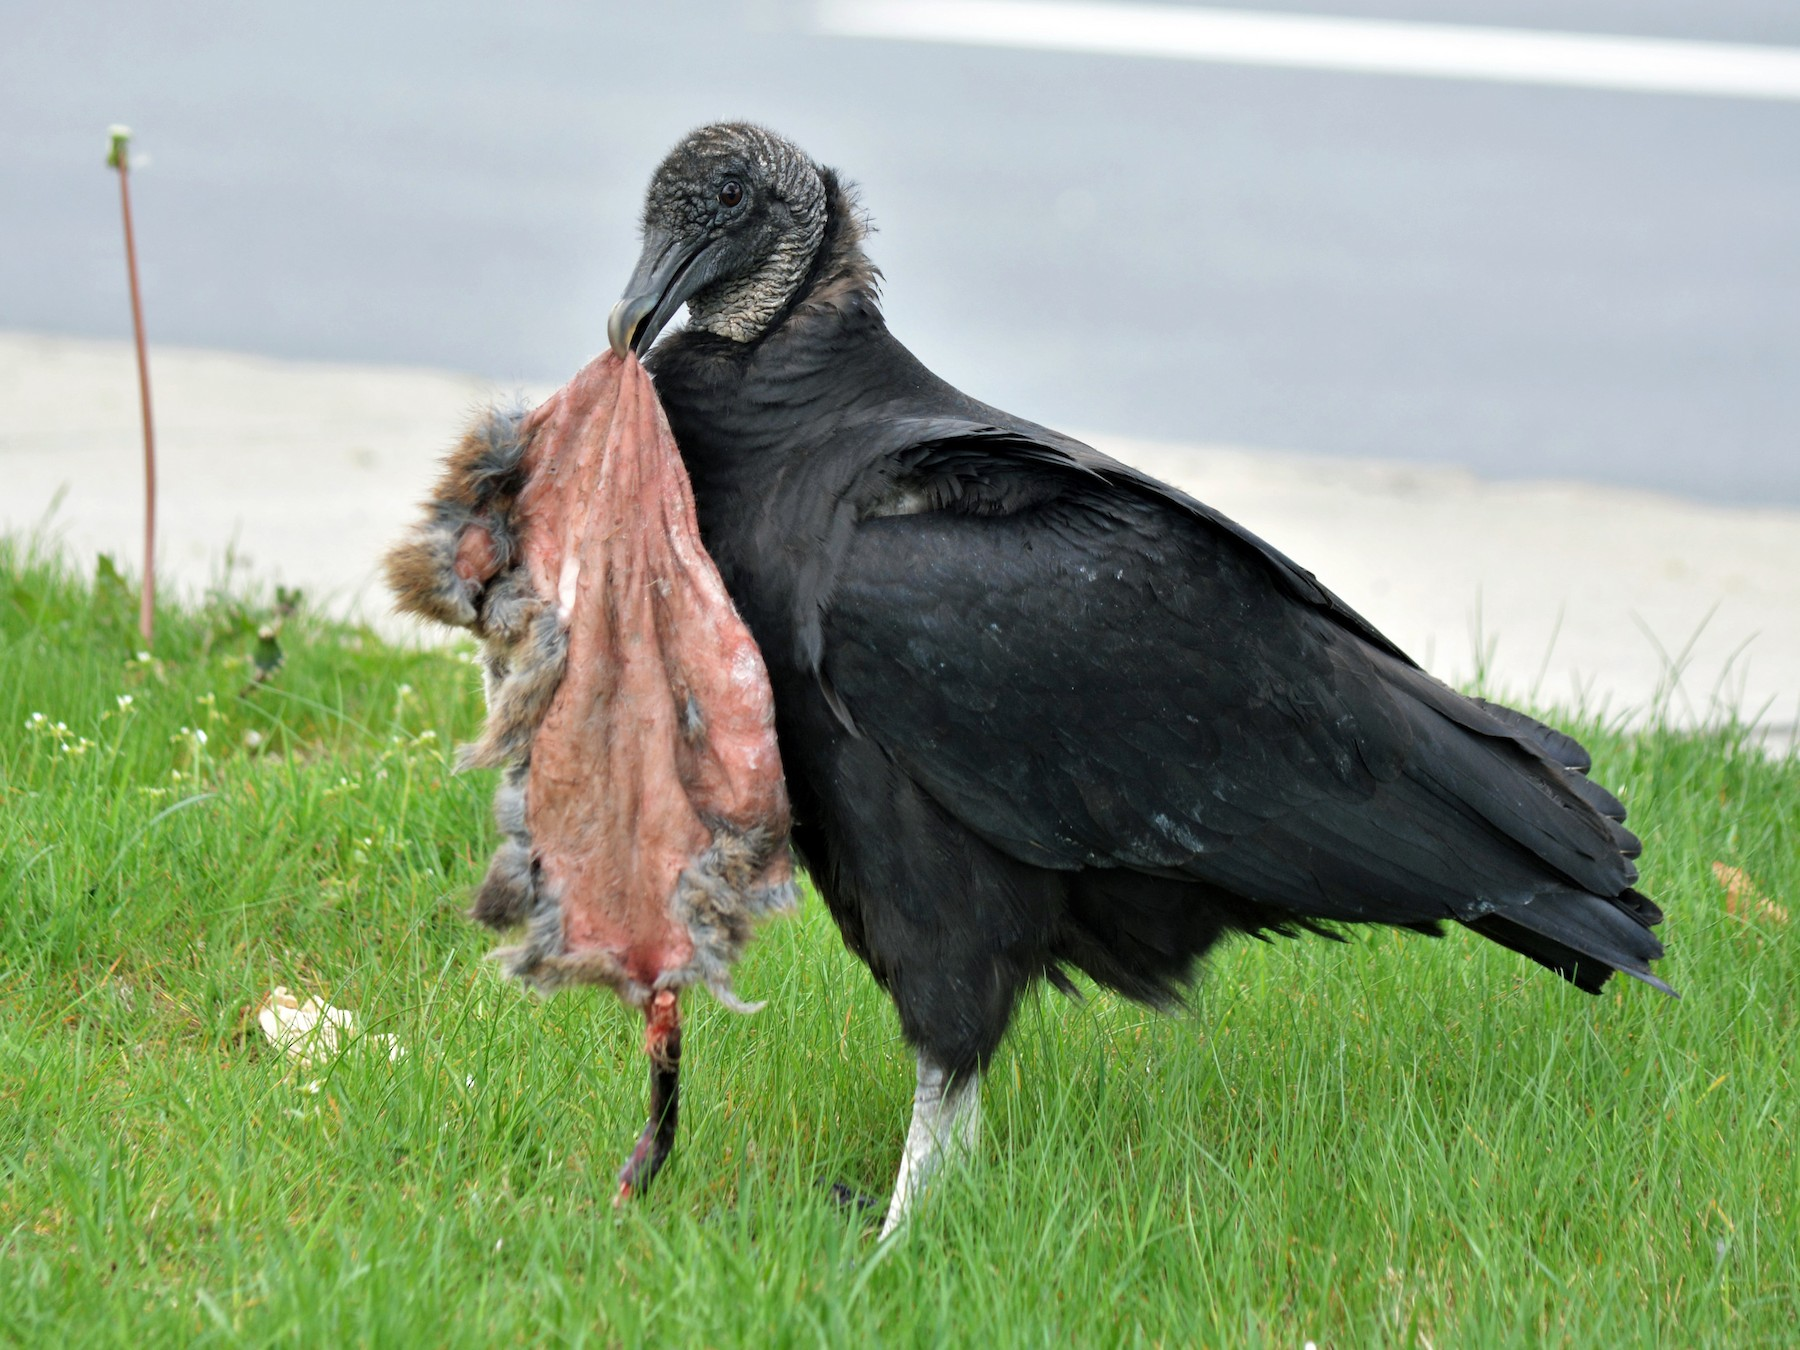 Black Vulture - Sam Zhang